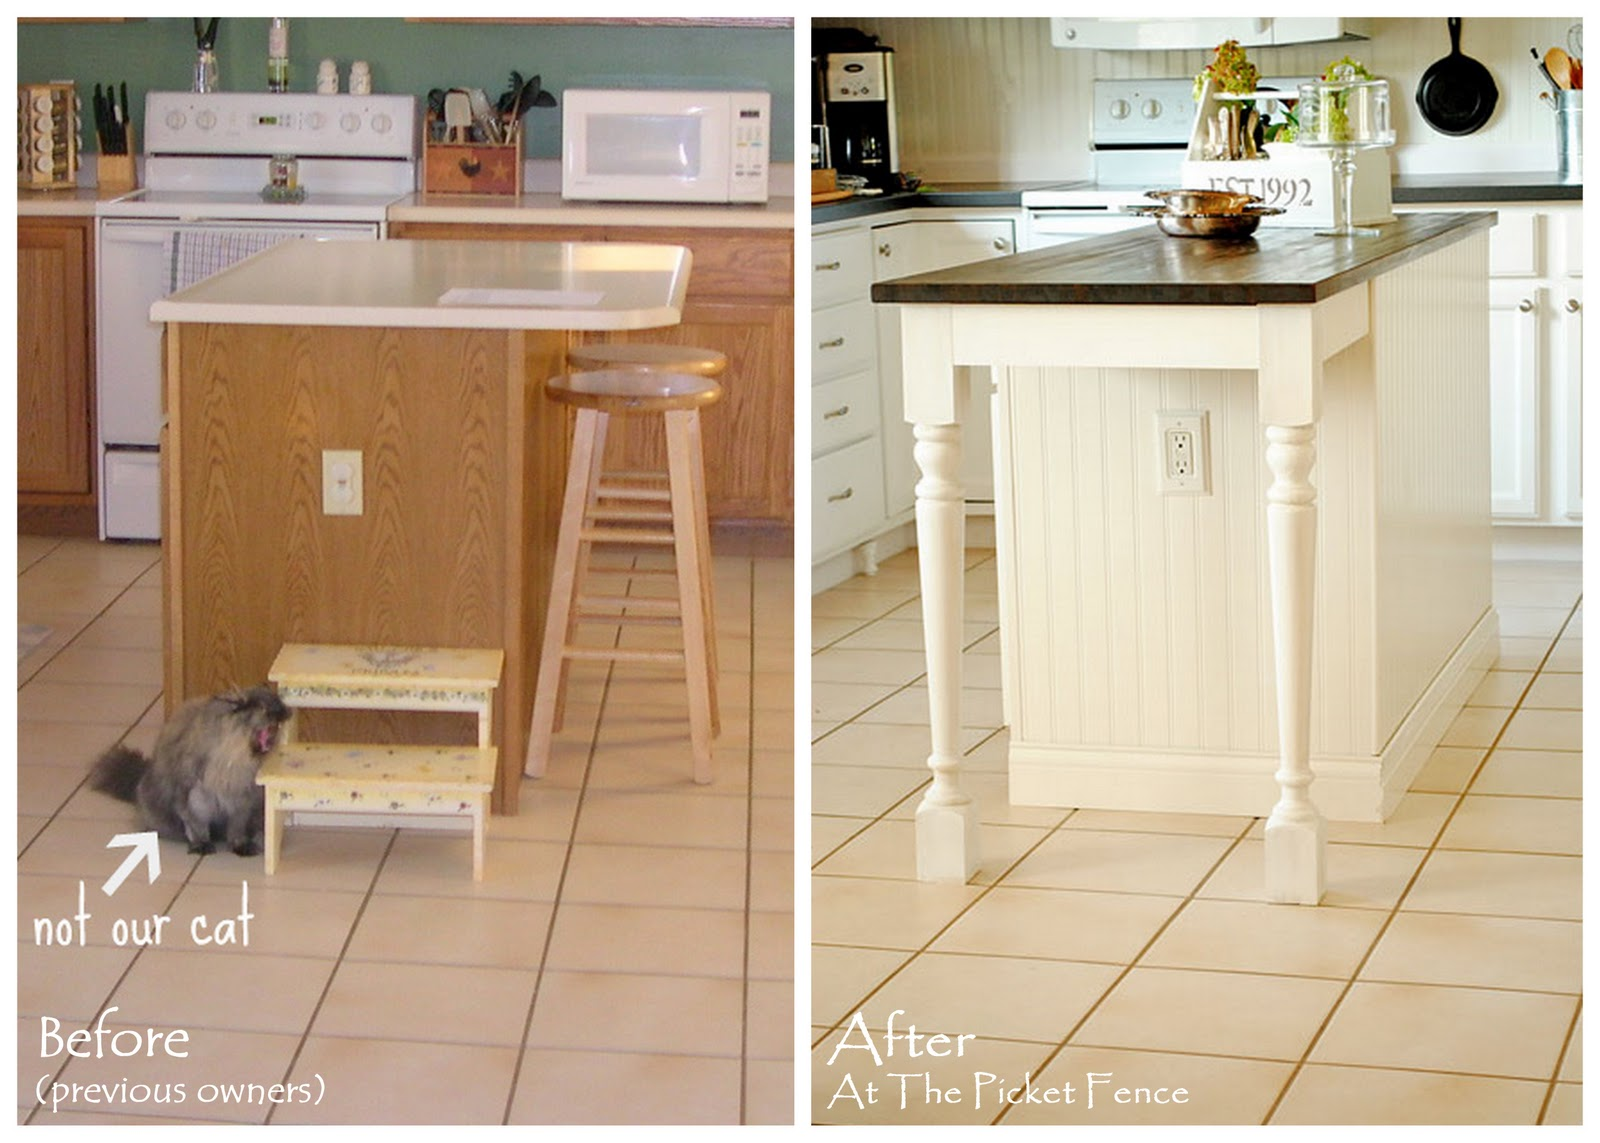 Ikea Fyndig Unterschrank Für Backofen ~ My kitchen island transformation  Part One  At The Picket Fence